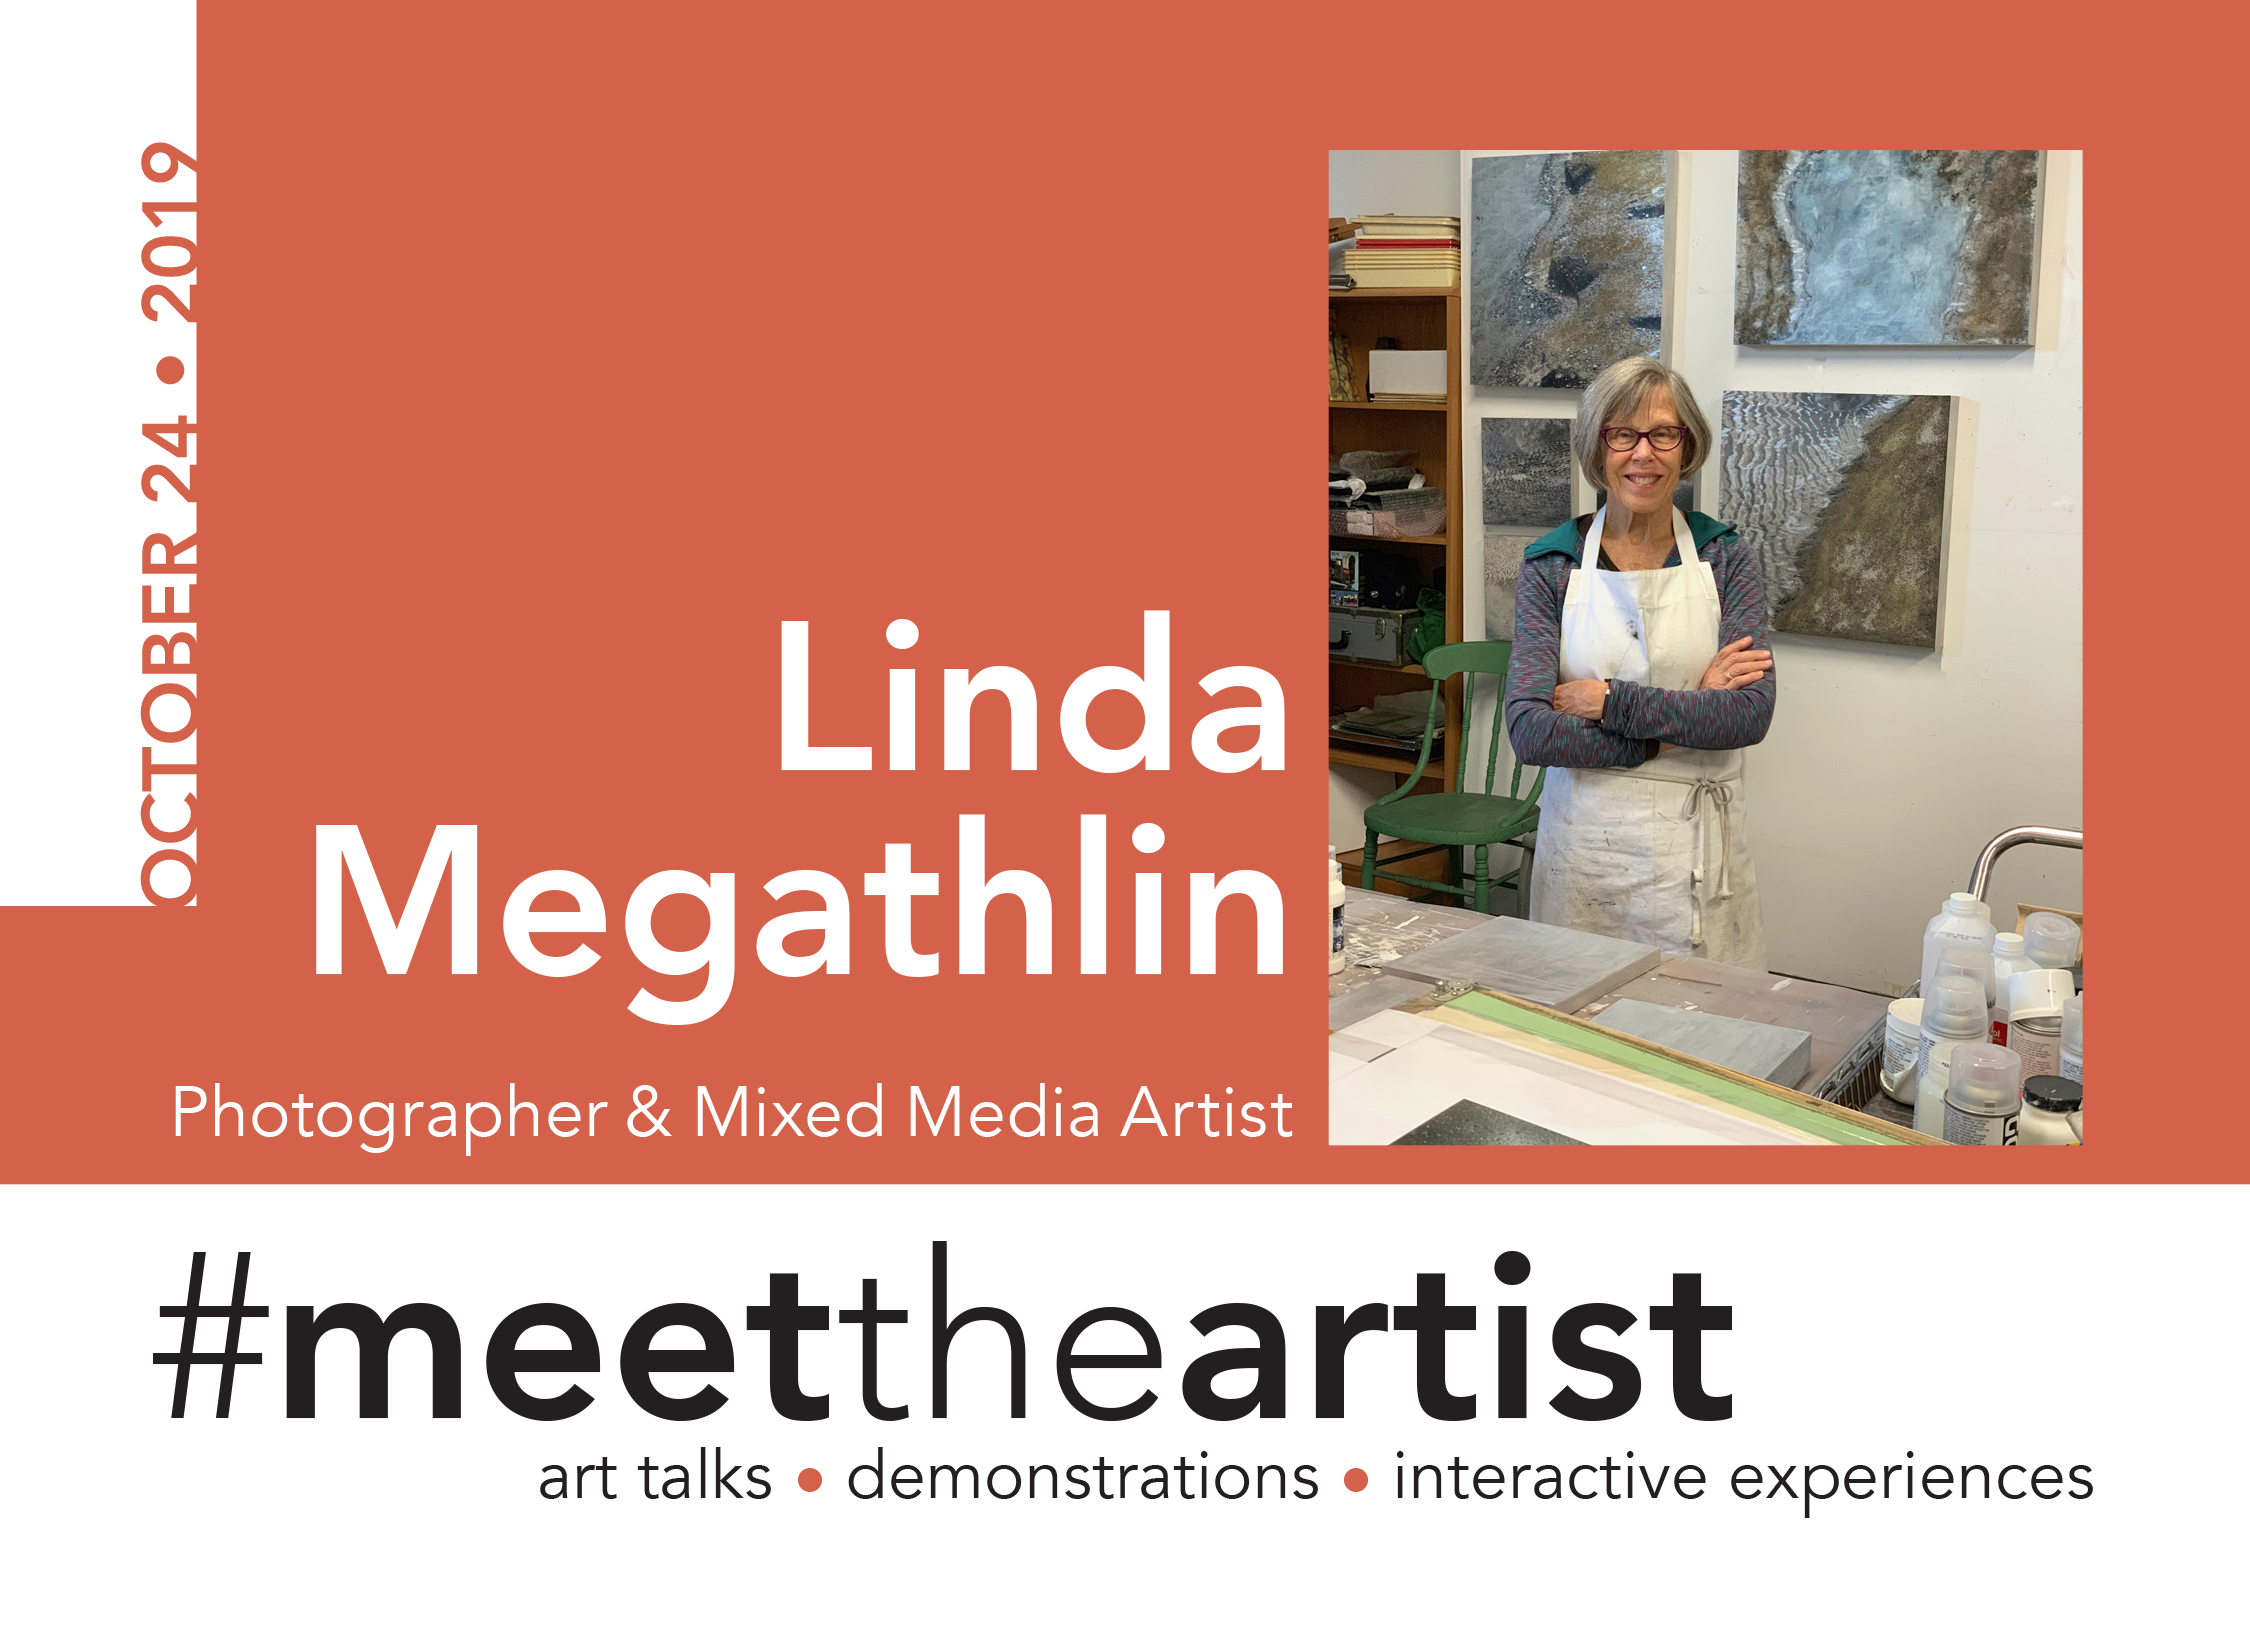 #meettheartist Linda Megathlin